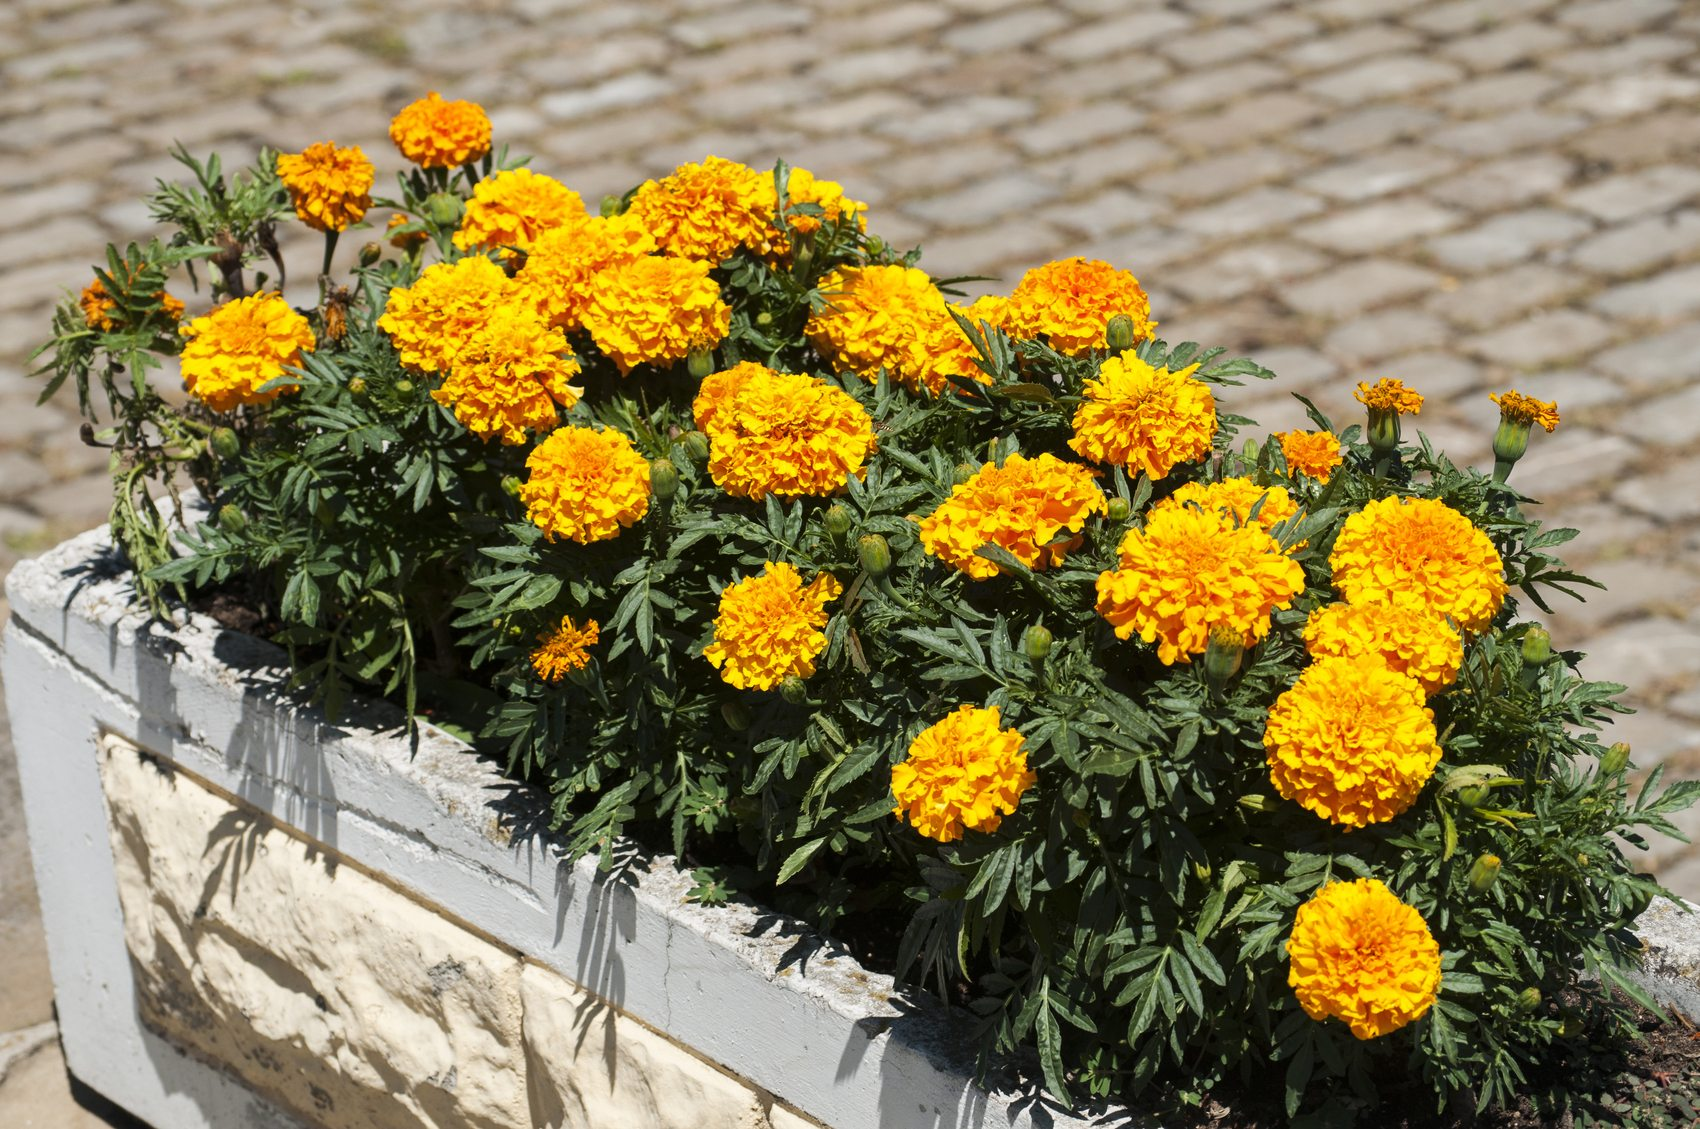 Marigold - Ornamental Plants as Mosquito Repellent